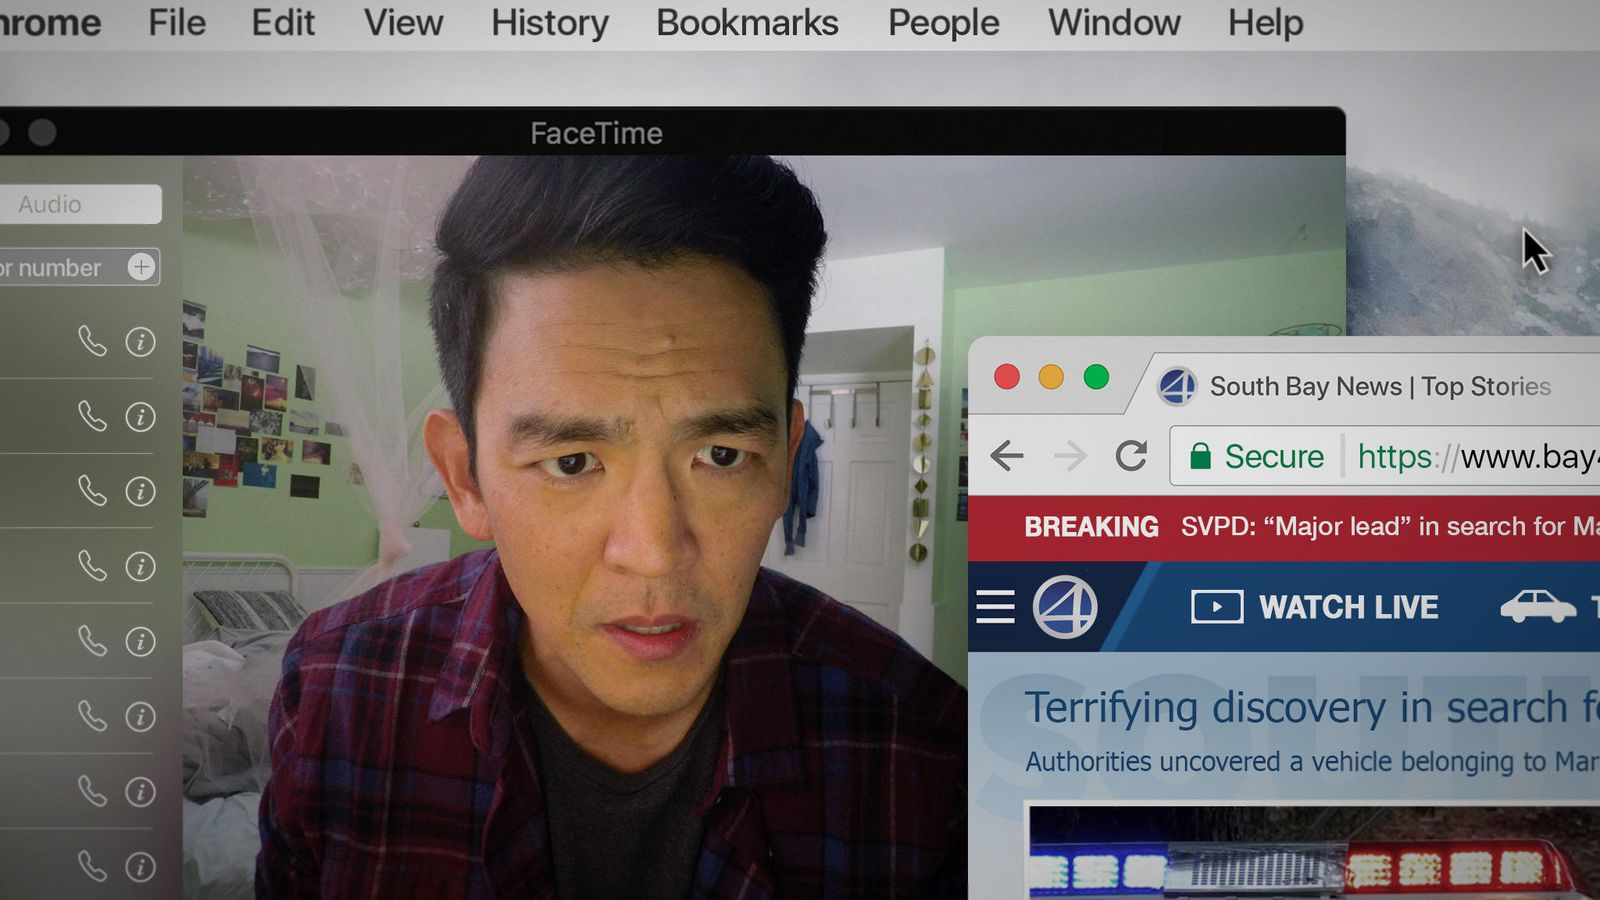 Searching Is A Thriller Told Completely From The Computer's Point Of View